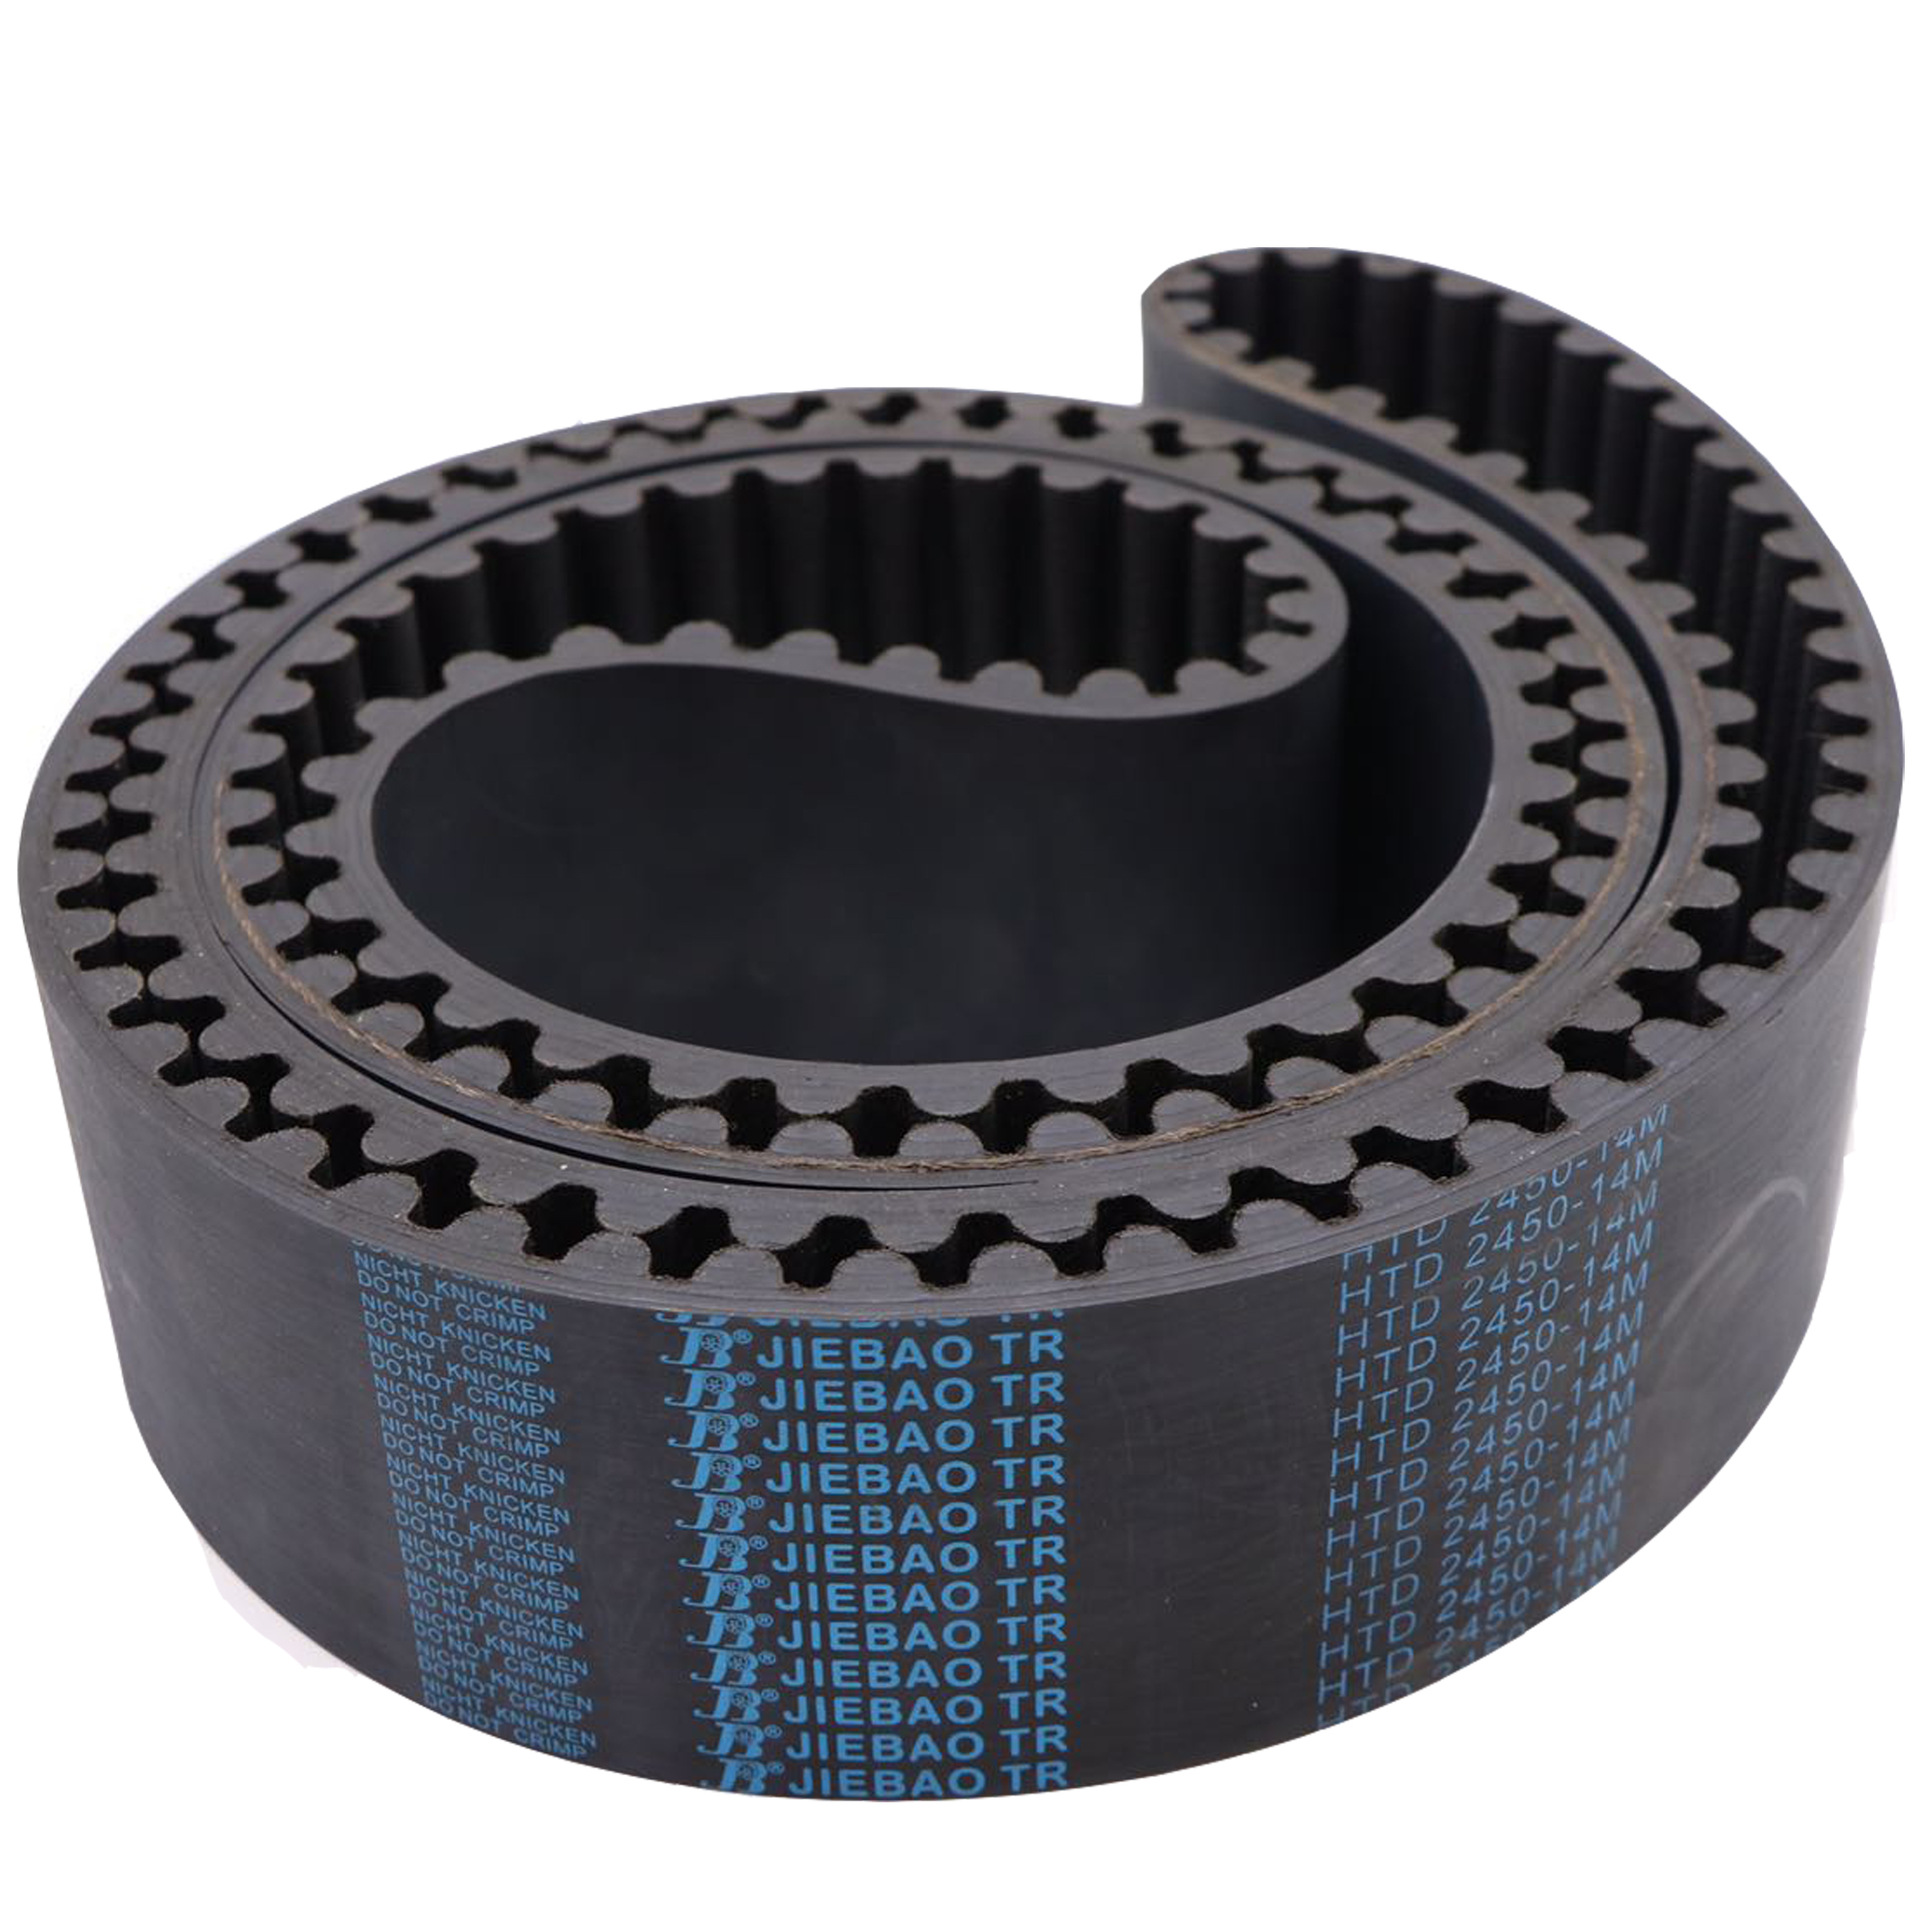 JINFENG Industrial serrated open drive belt 3D printing rubber belt tooth belt polyurethane ring syn